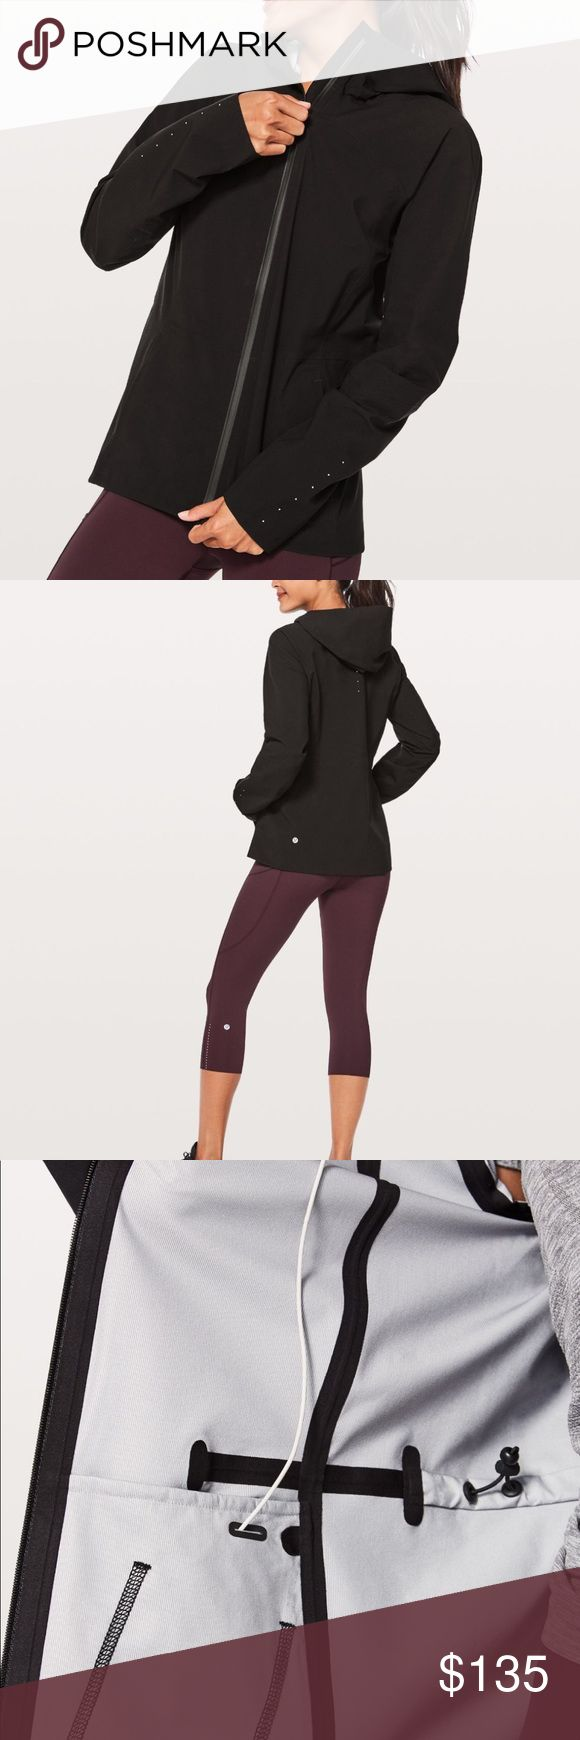 NWOT Lululemon Rain Rival Jacket Run outside in this seam-sealed jacket—even if the forecast calls for cold, wet weather glyde waterproof Glyde Waterproof fabric is breathable and jacket is strategically seam-sealed to keep moisture out. waterproof features Designed for: To + from Interior drawcord : Cinch the waist drawcord to customize your fit Shine-bright : Reflective detail Cinchable hood: To maintain peripheral vision Secure storage: Secure pockets for your essentials and a media…